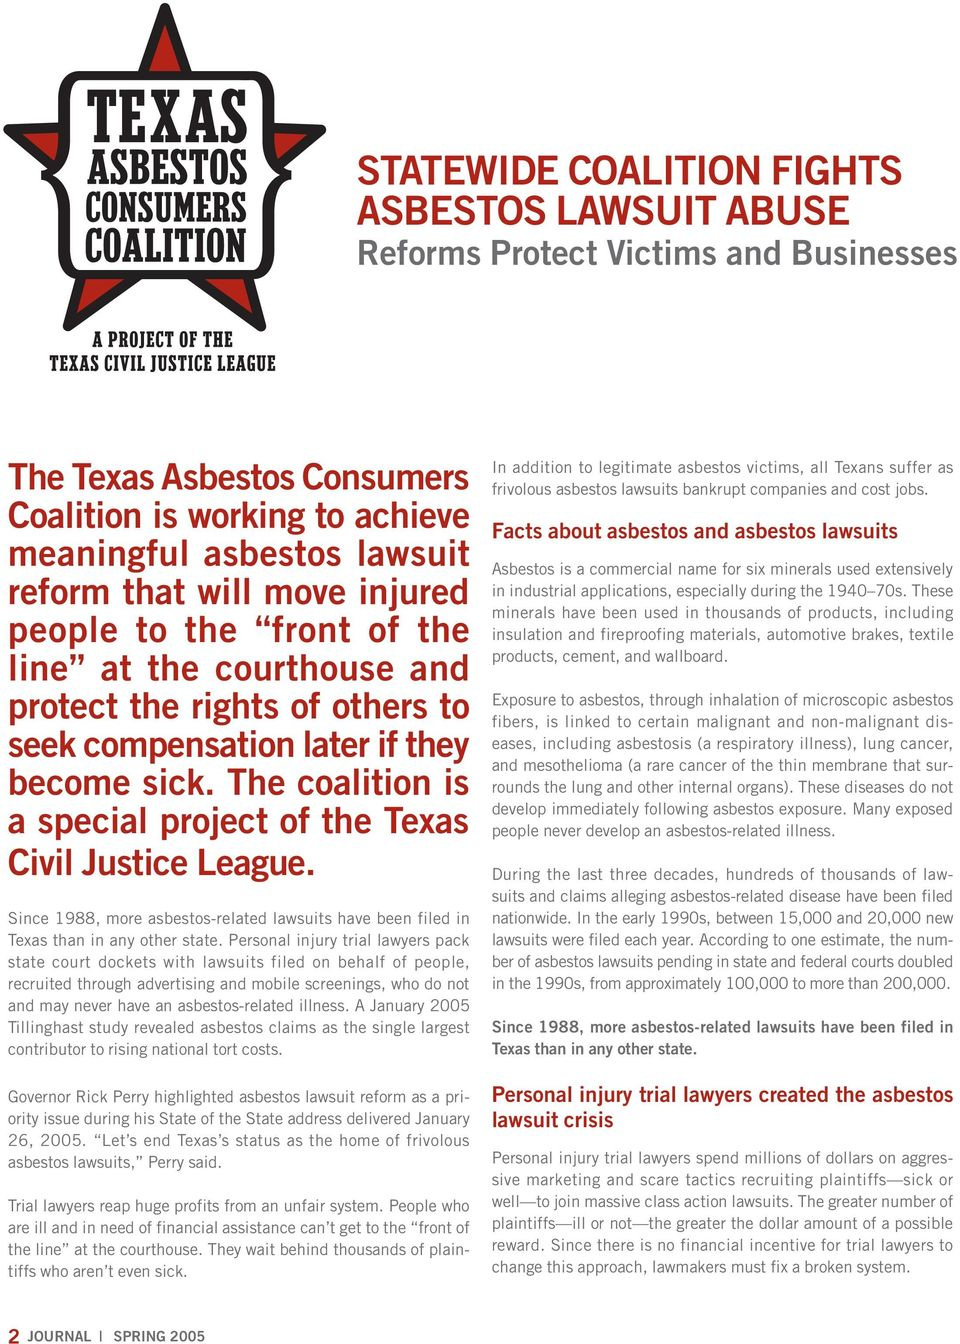 The coalition is a special project of the Texas Civil Justice League. Since 1988, more asbestos-related lawsuits have been filed in Texas than in any other state.